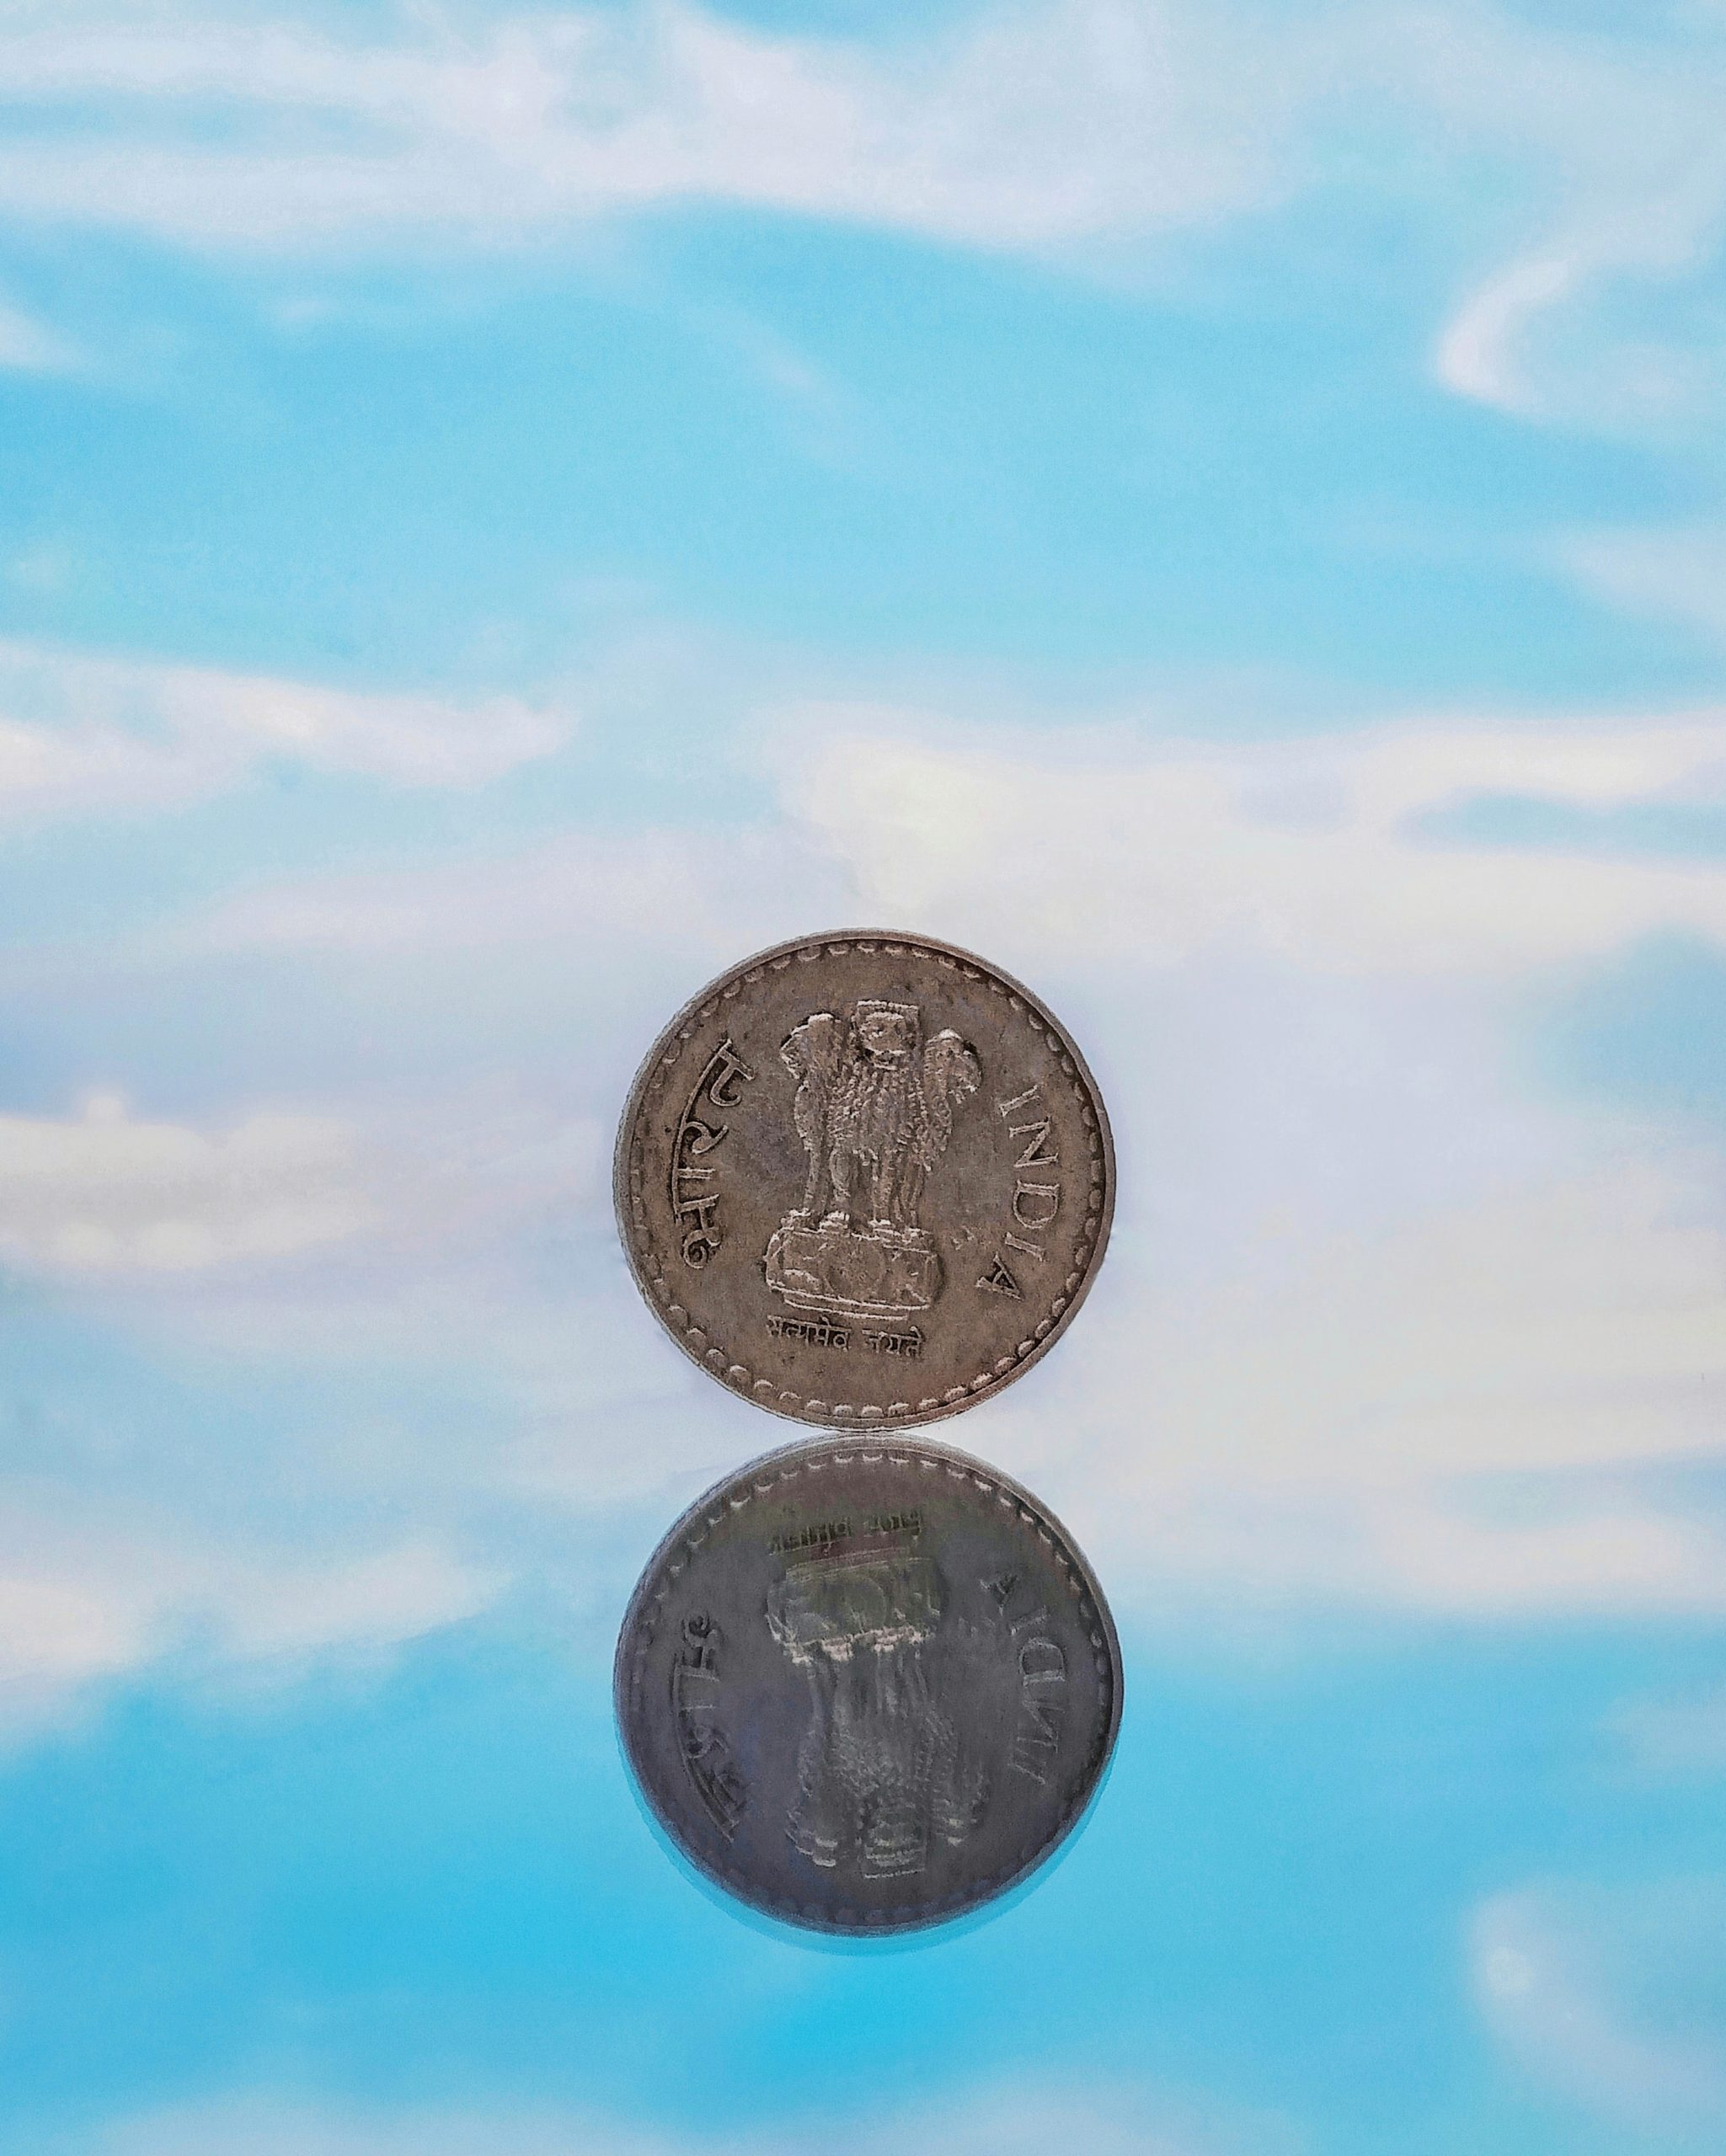 5 rupee coin with reflection and sky